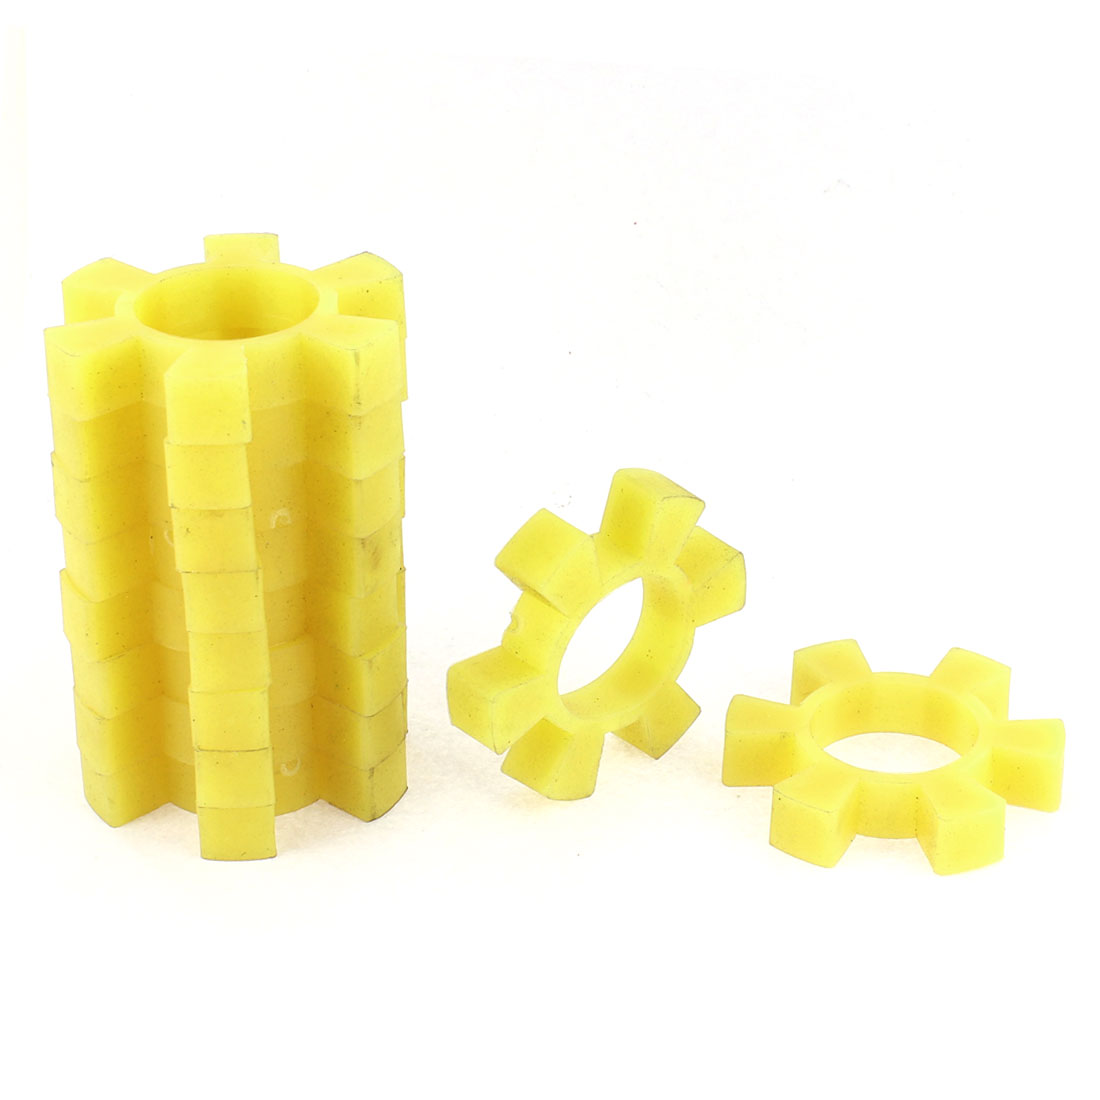 10pcs Coupling Shaft Center Spider Coupler Damper Yellow 42mm Dia Bore